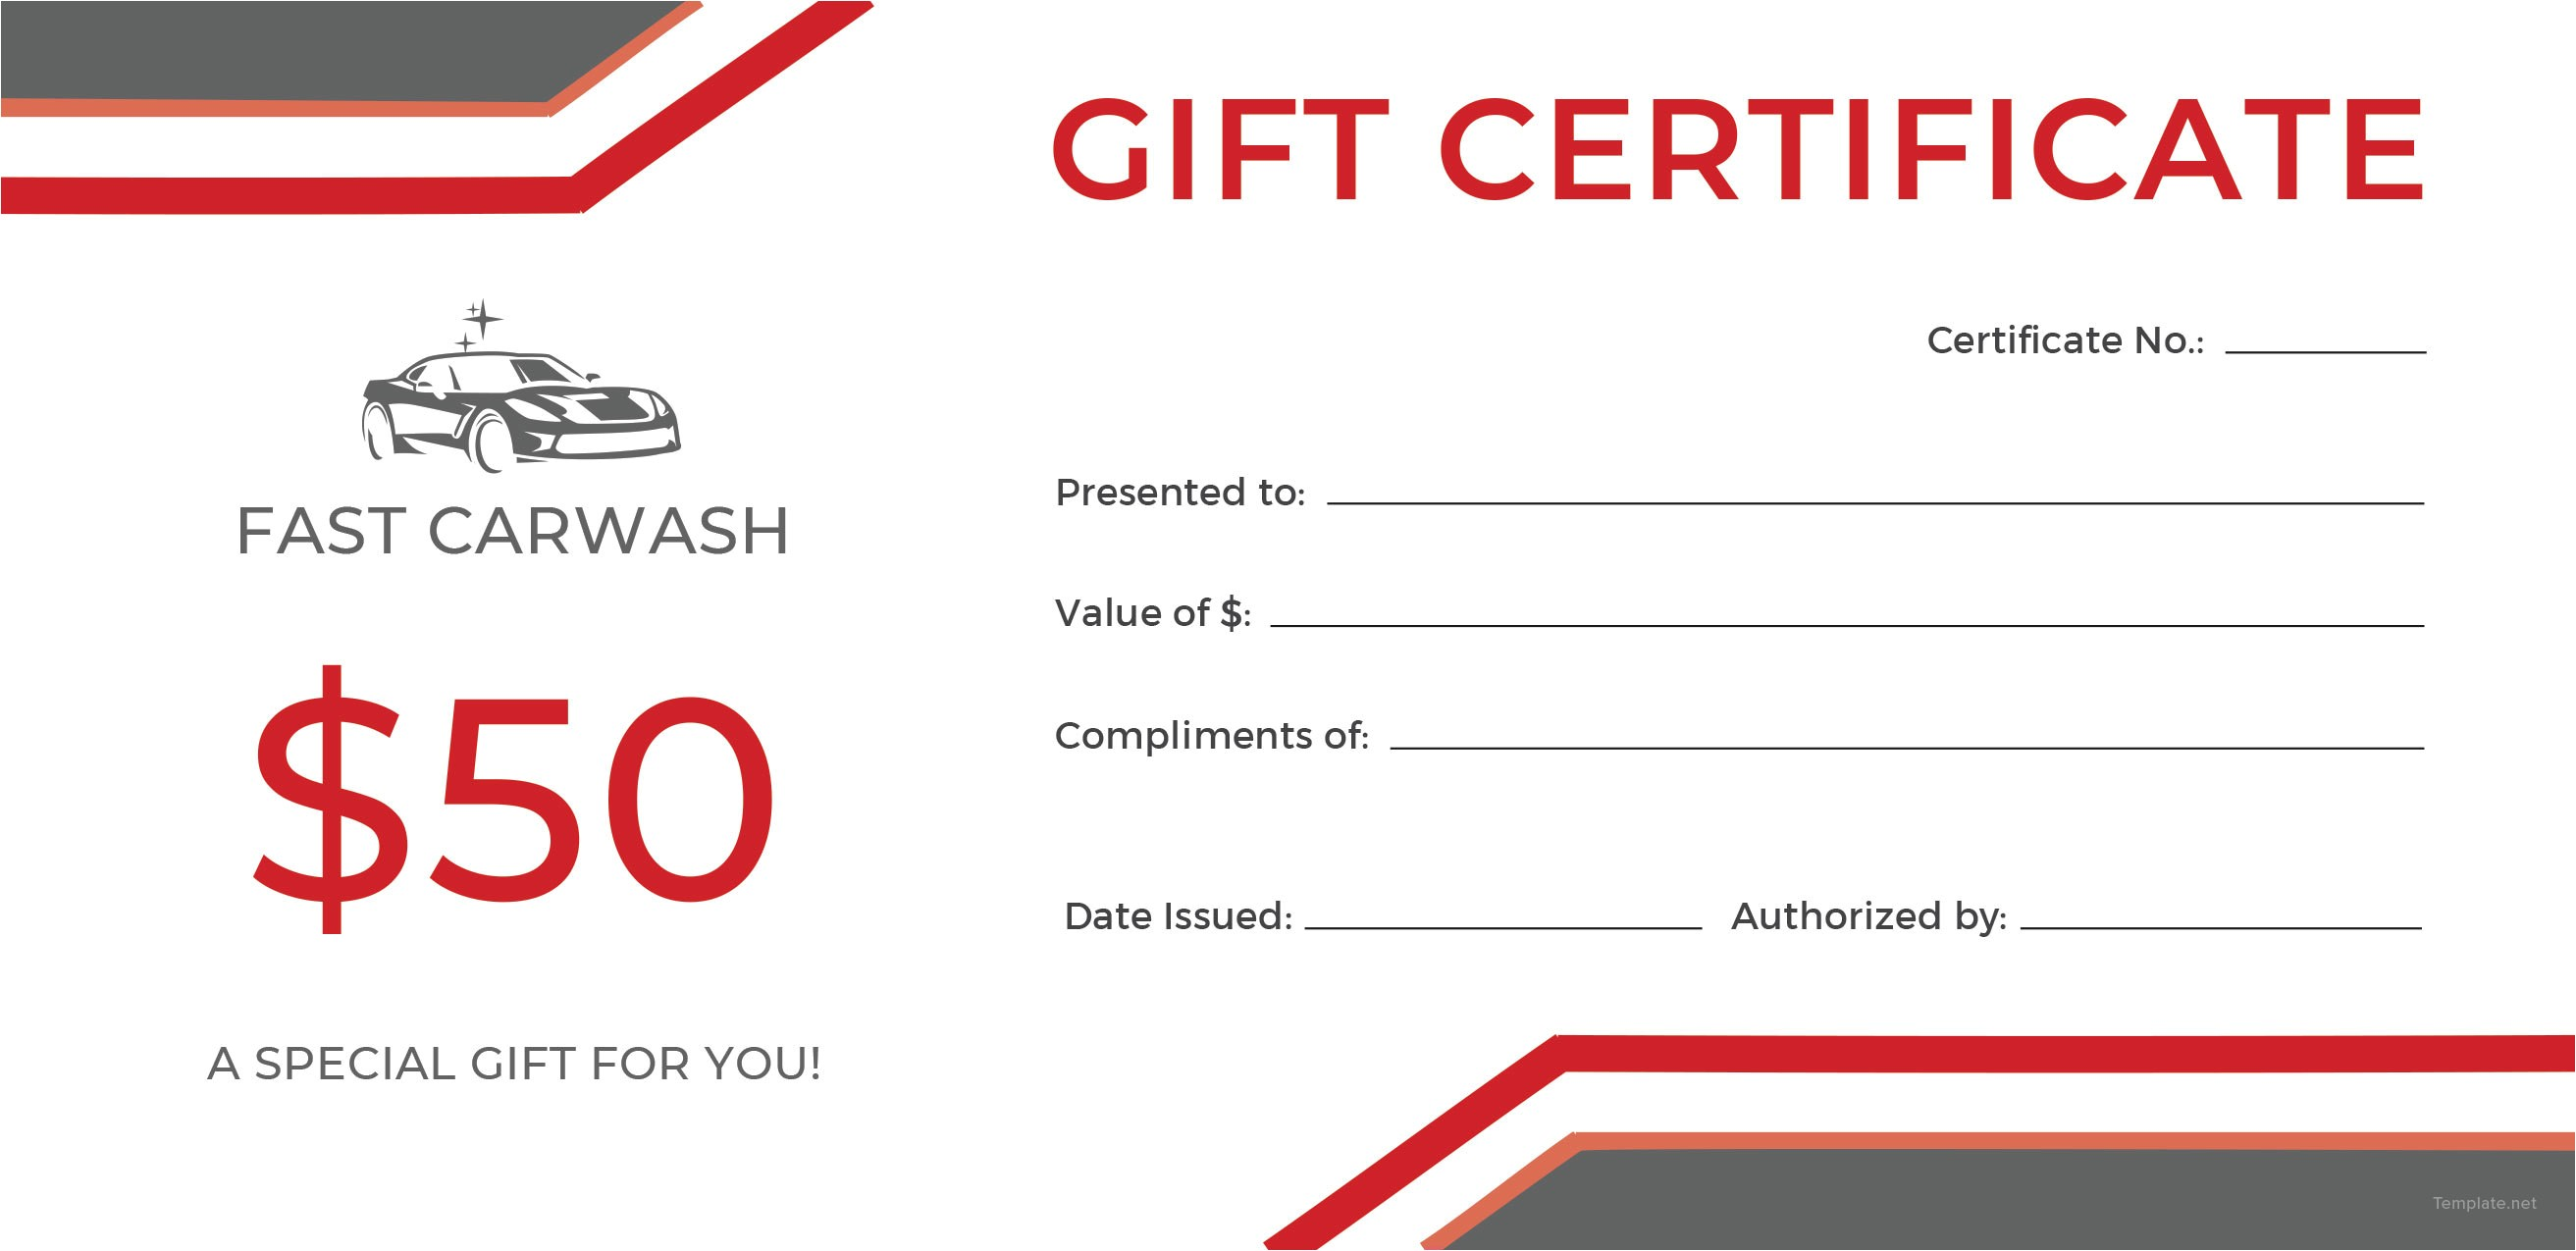 Car Wash Gift Certificate Template Free Carwash Gift Certificate Template In Adobe